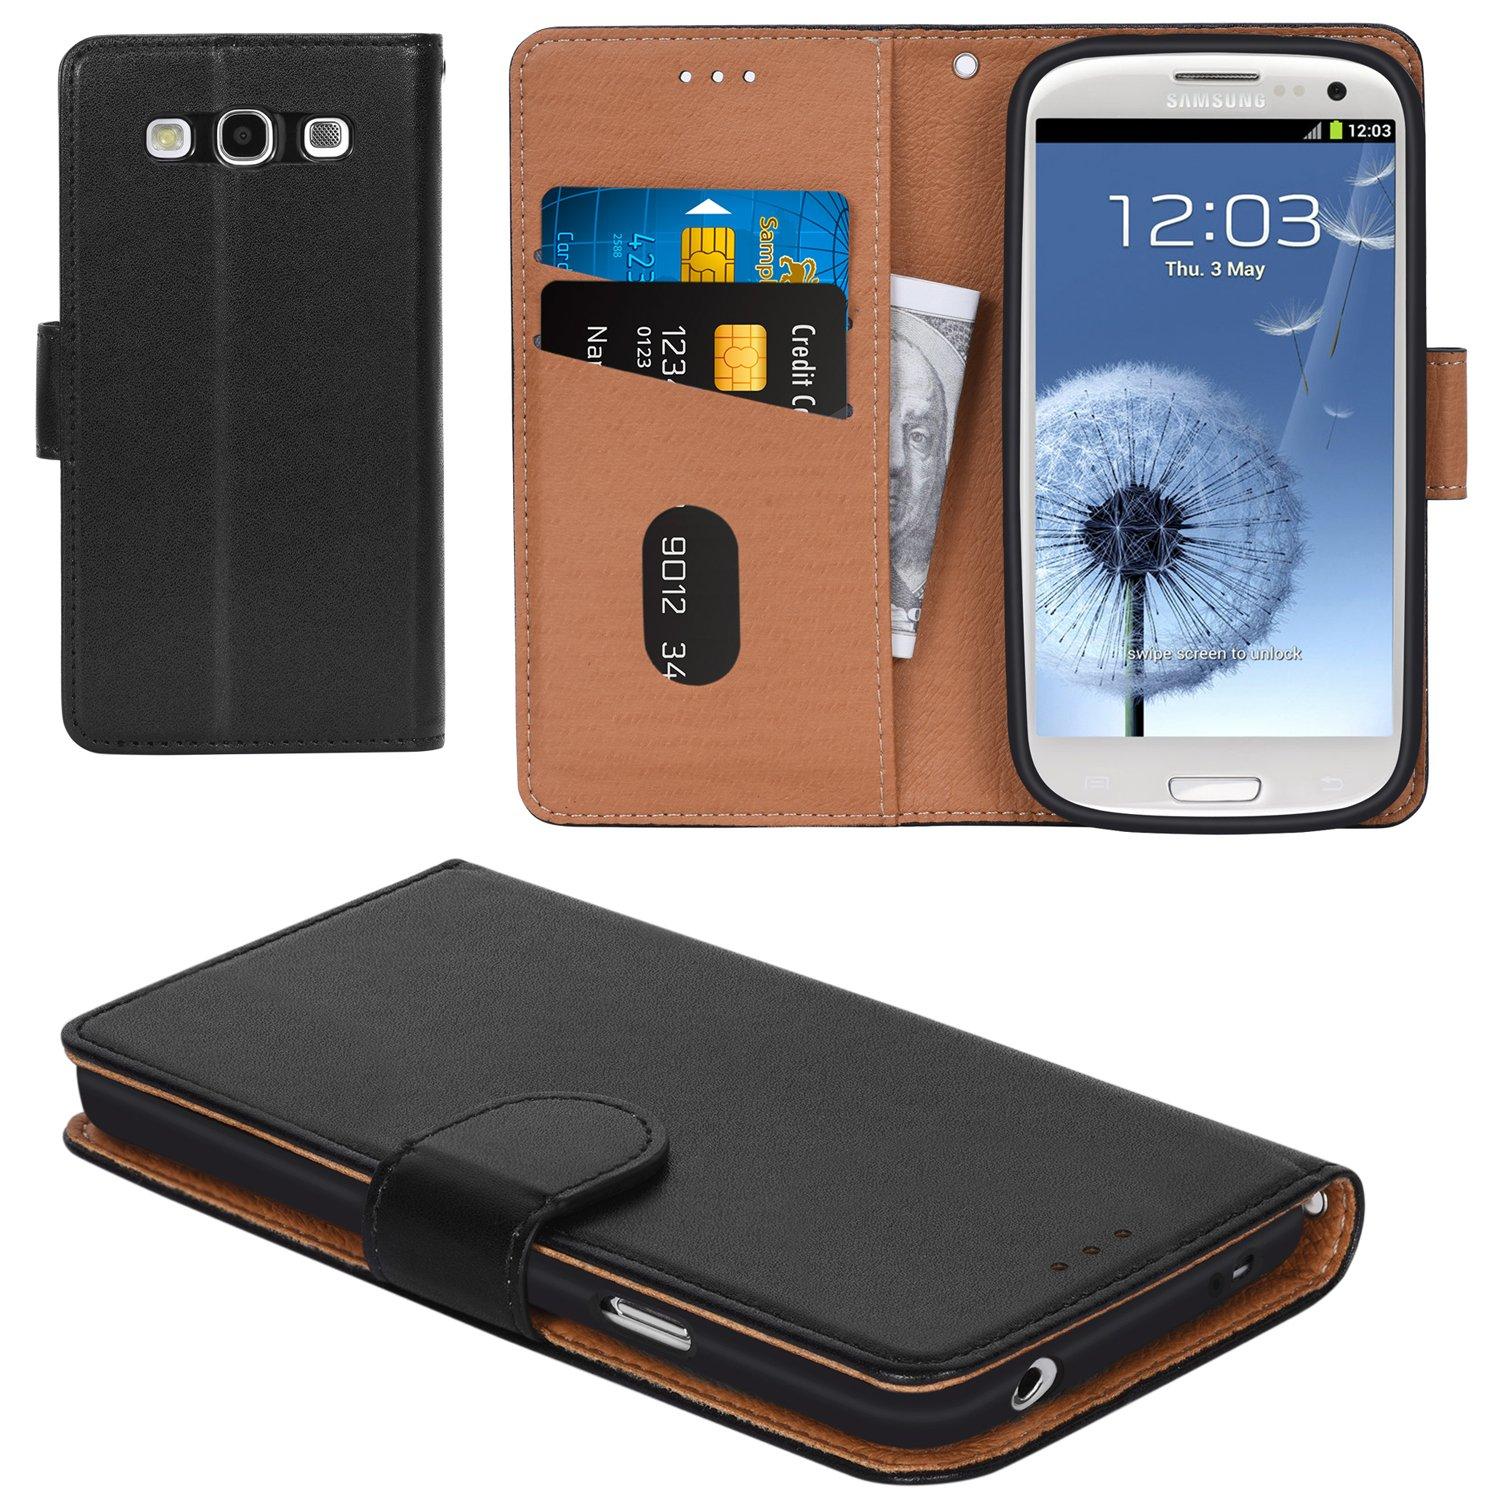 Galaxy S3 Case, Aicoco Flip Cover Leather, Phone Wallet Case for Samsung Galaxy S3/S3 Neo - Black